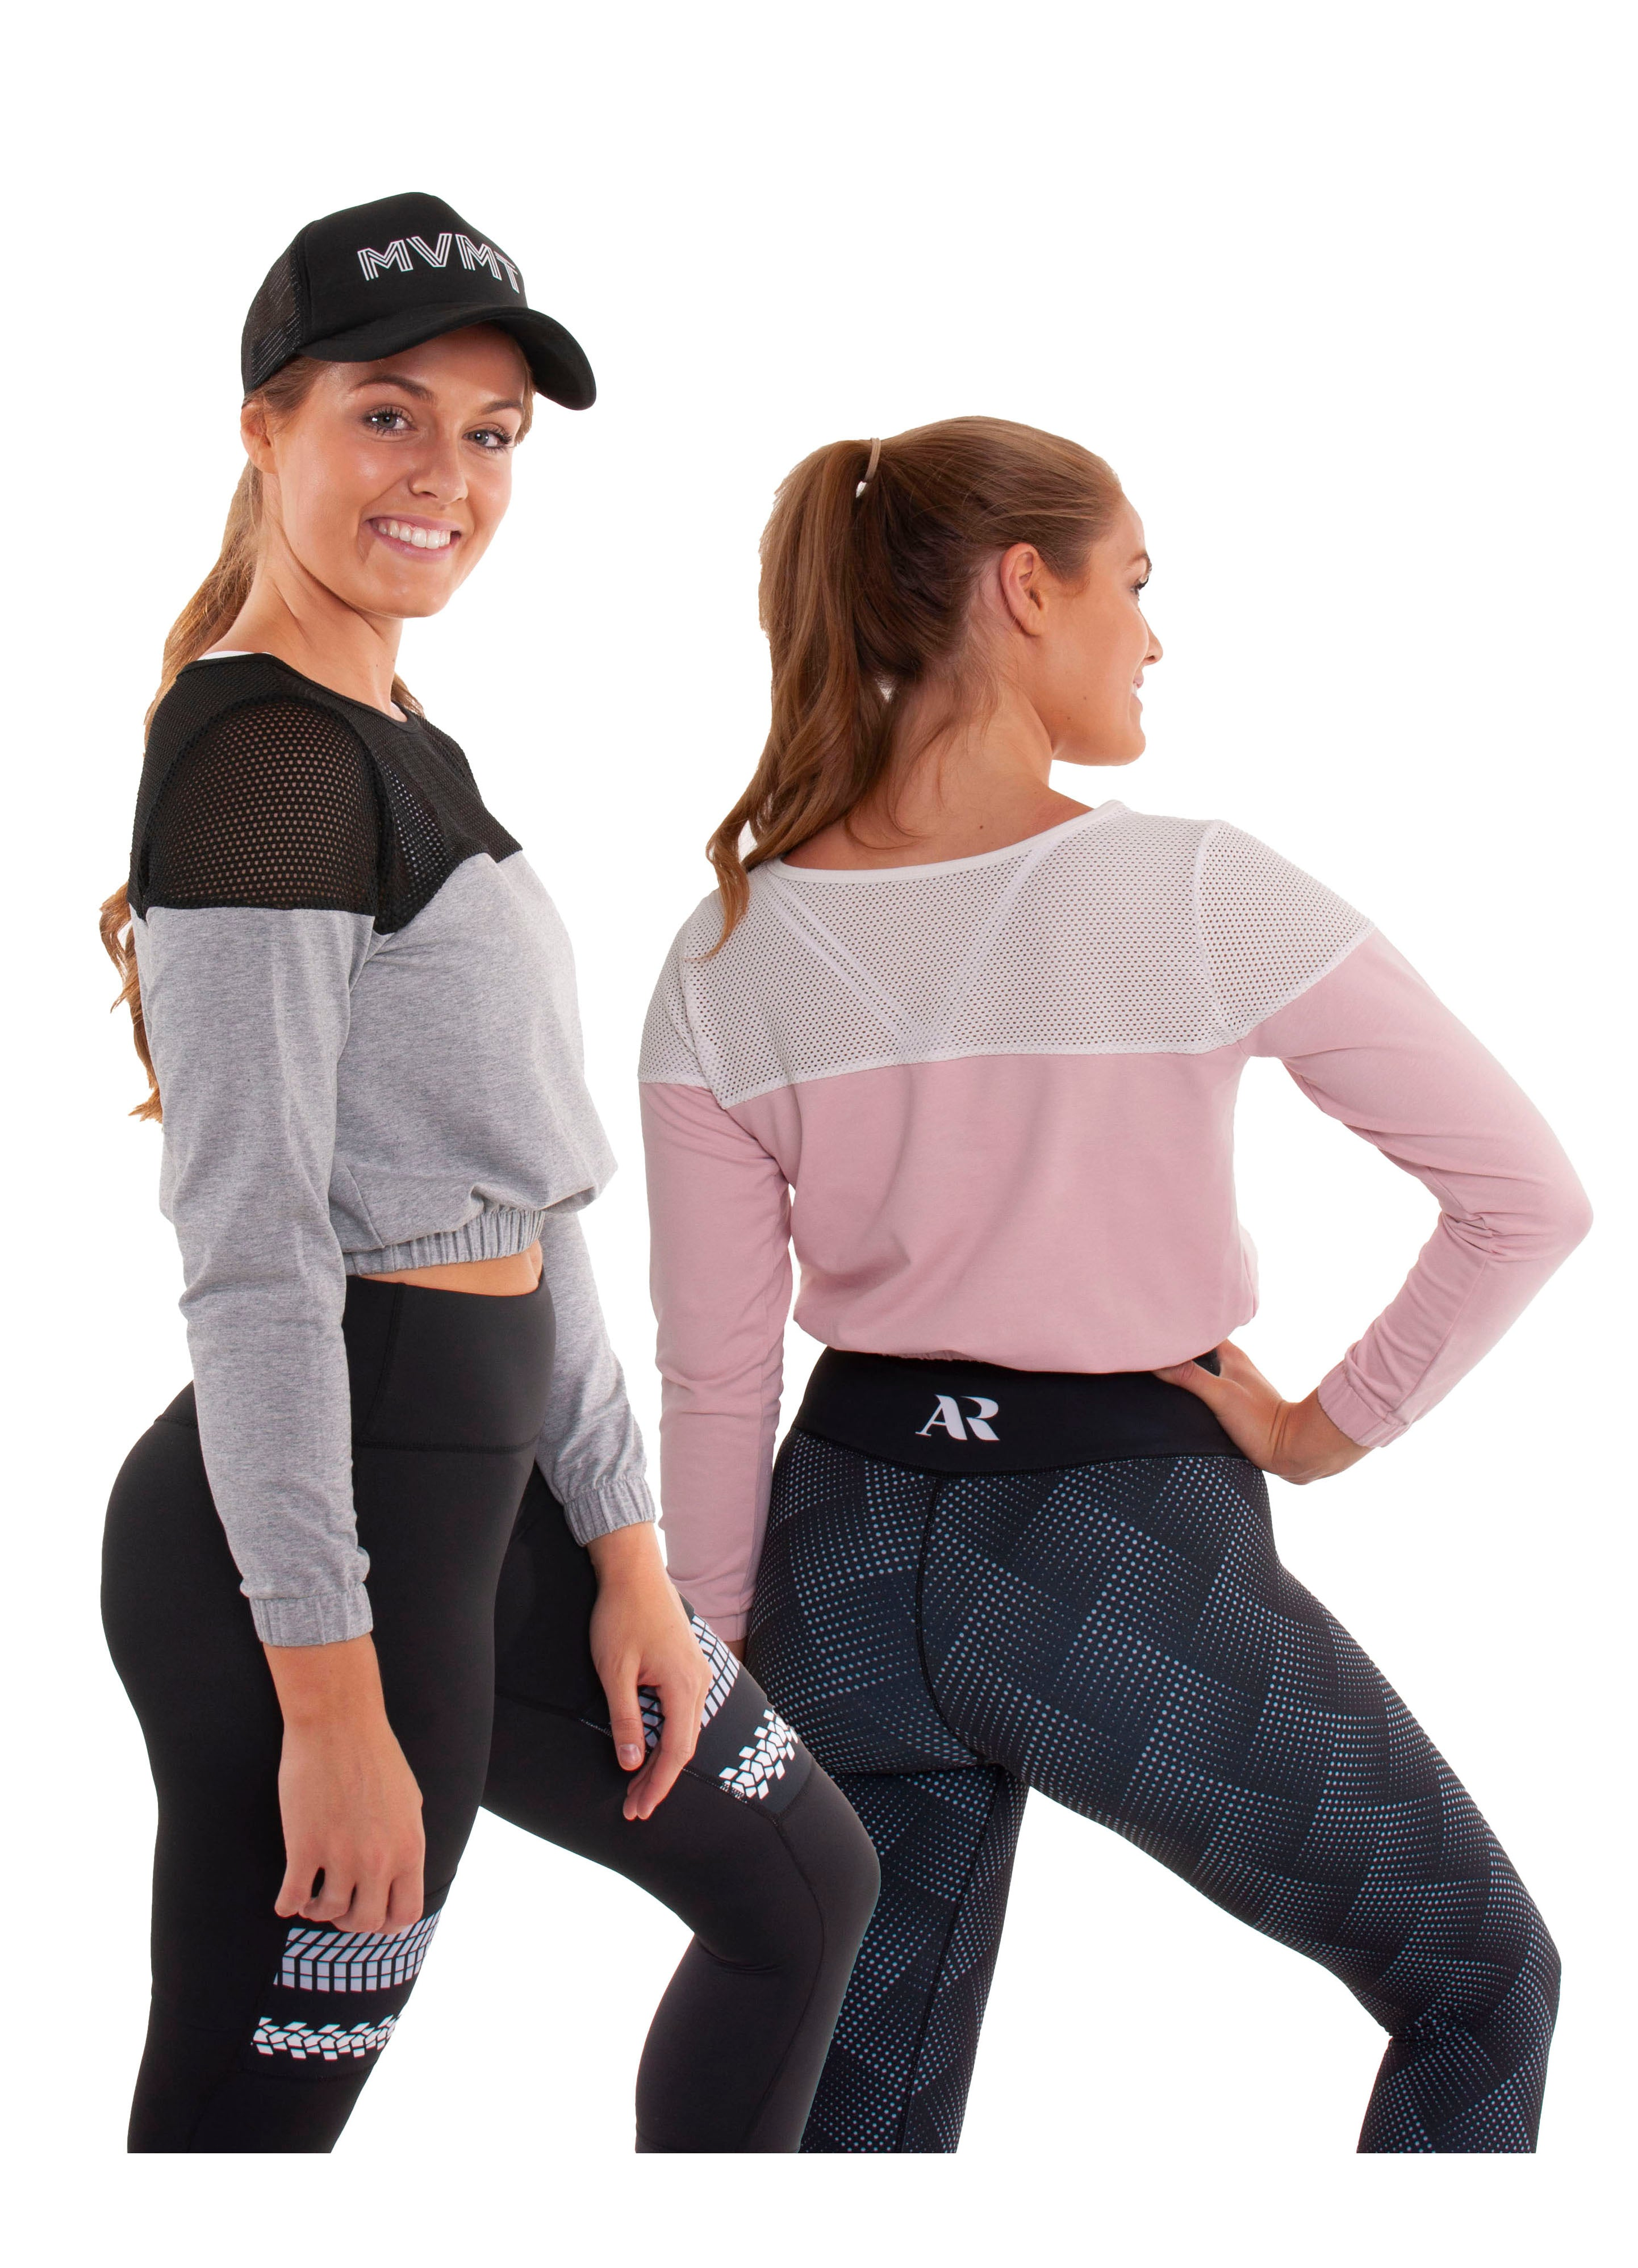 Akia Rose Activewear - Jumper -  cropped pink or grey jumper with black mesh across the top